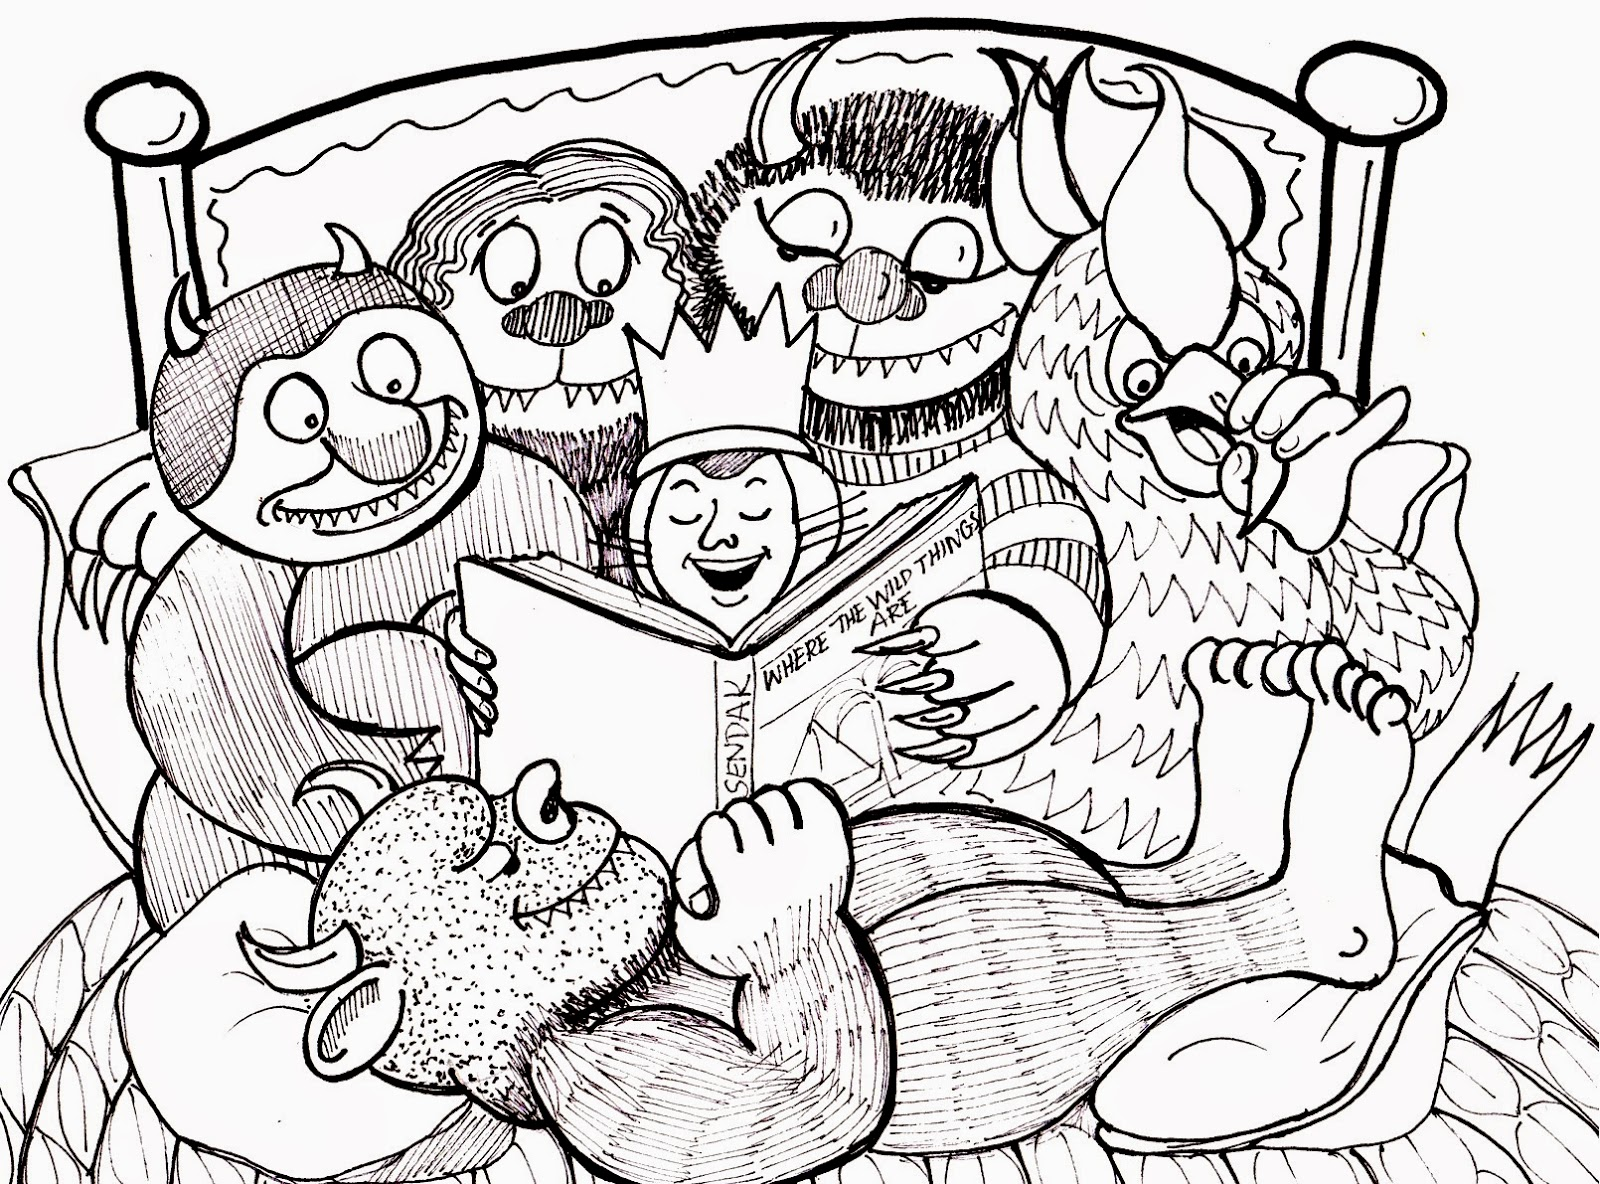 Coloring Pages For Where The Wild Things Are : Where the wild things are coloring pages free home